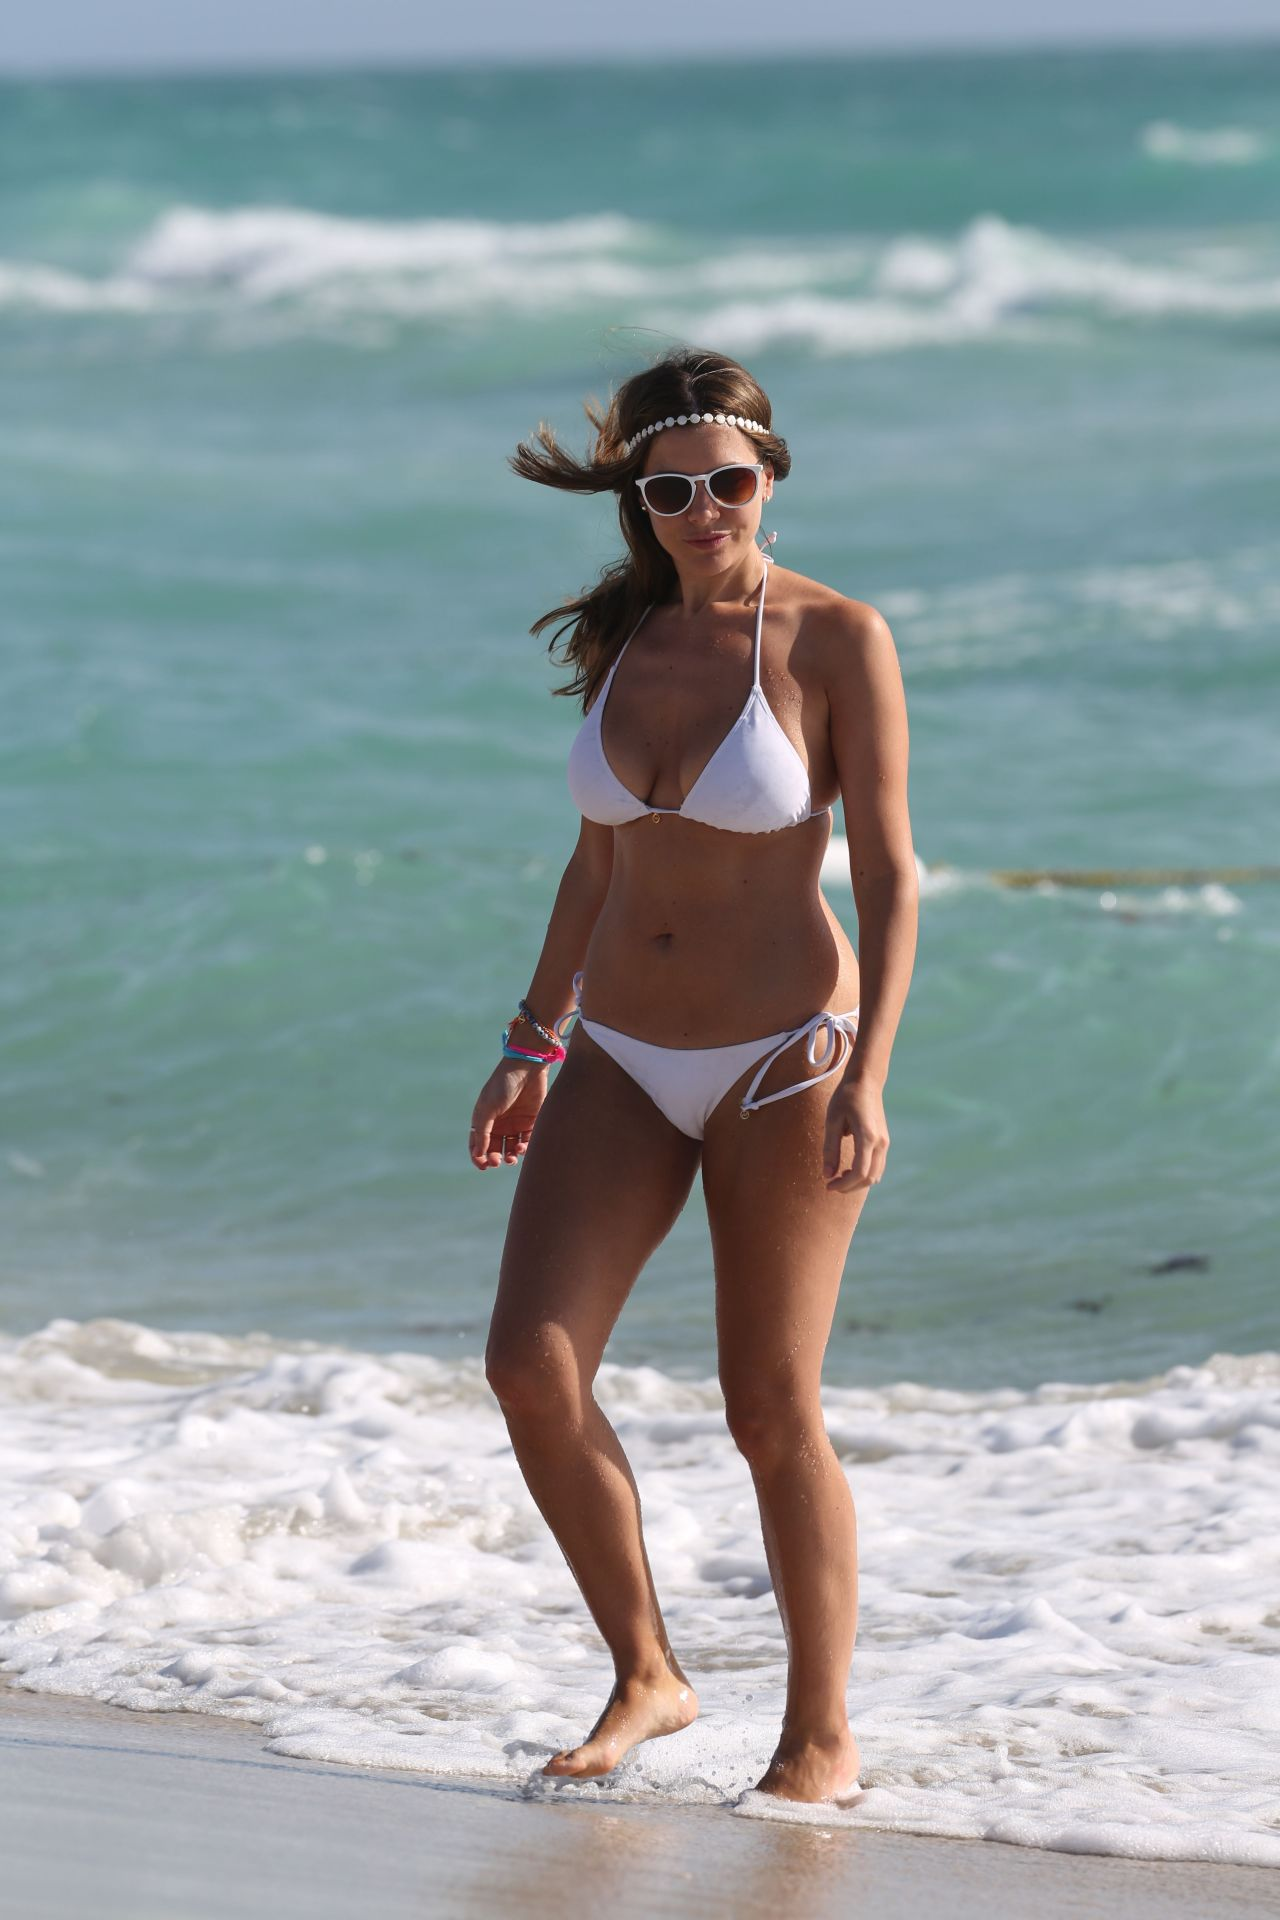 Imogen Thomas in White Bikini - Beach in Miami, March 2015